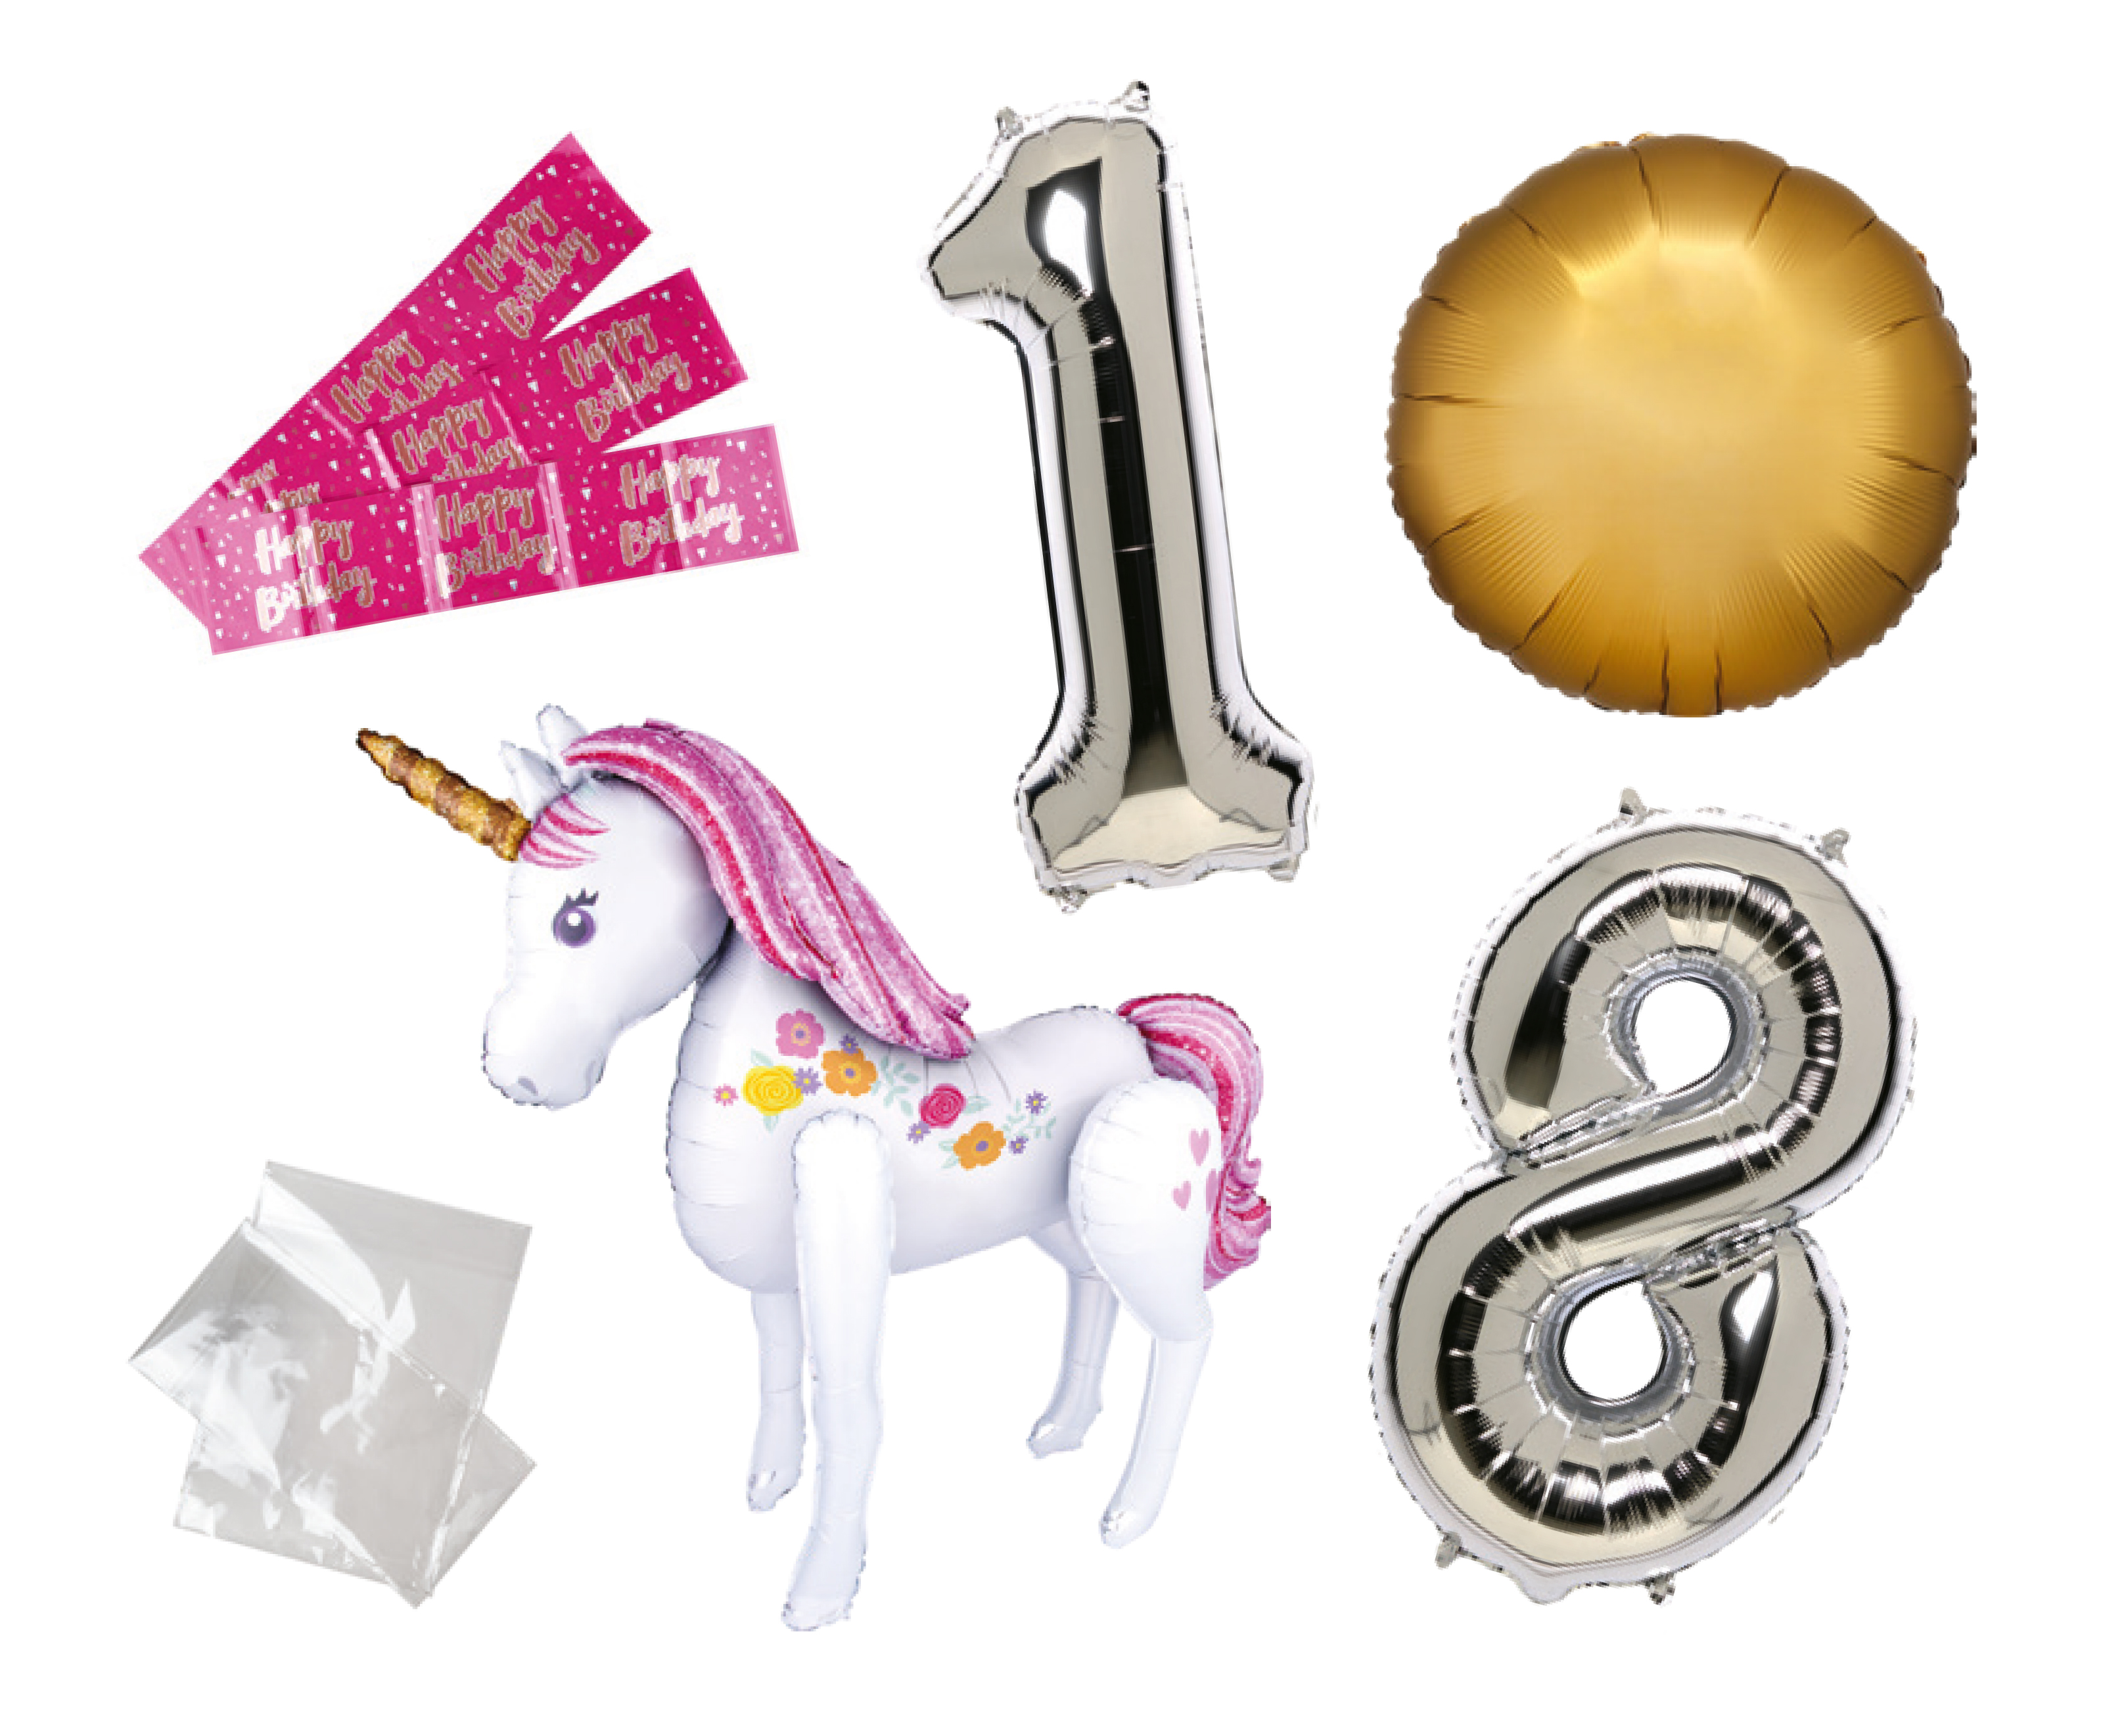 Thumbnail for The Foil Balloons Recycling Programme